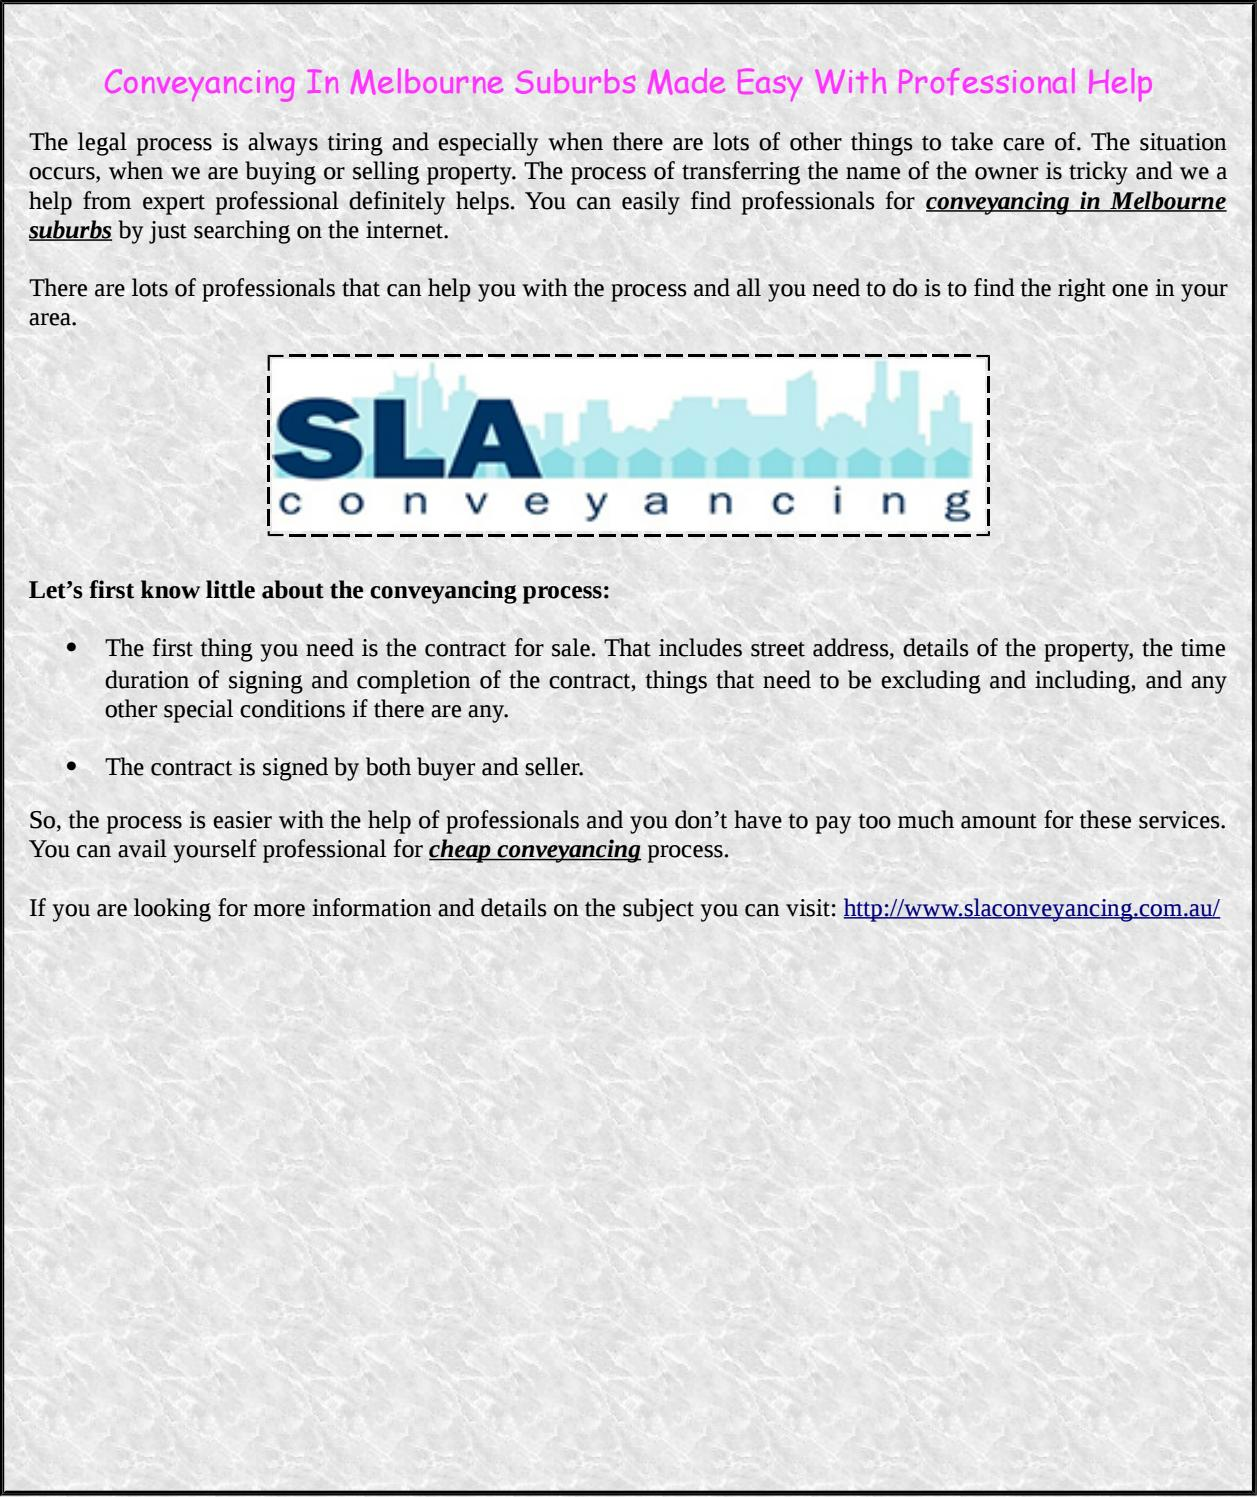 Conveyancing in melbourne suburbs made easy with professional help conveyancing in melbourne suburbs made easy with professional help by sla conveyancing issuu solutioingenieria Choice Image